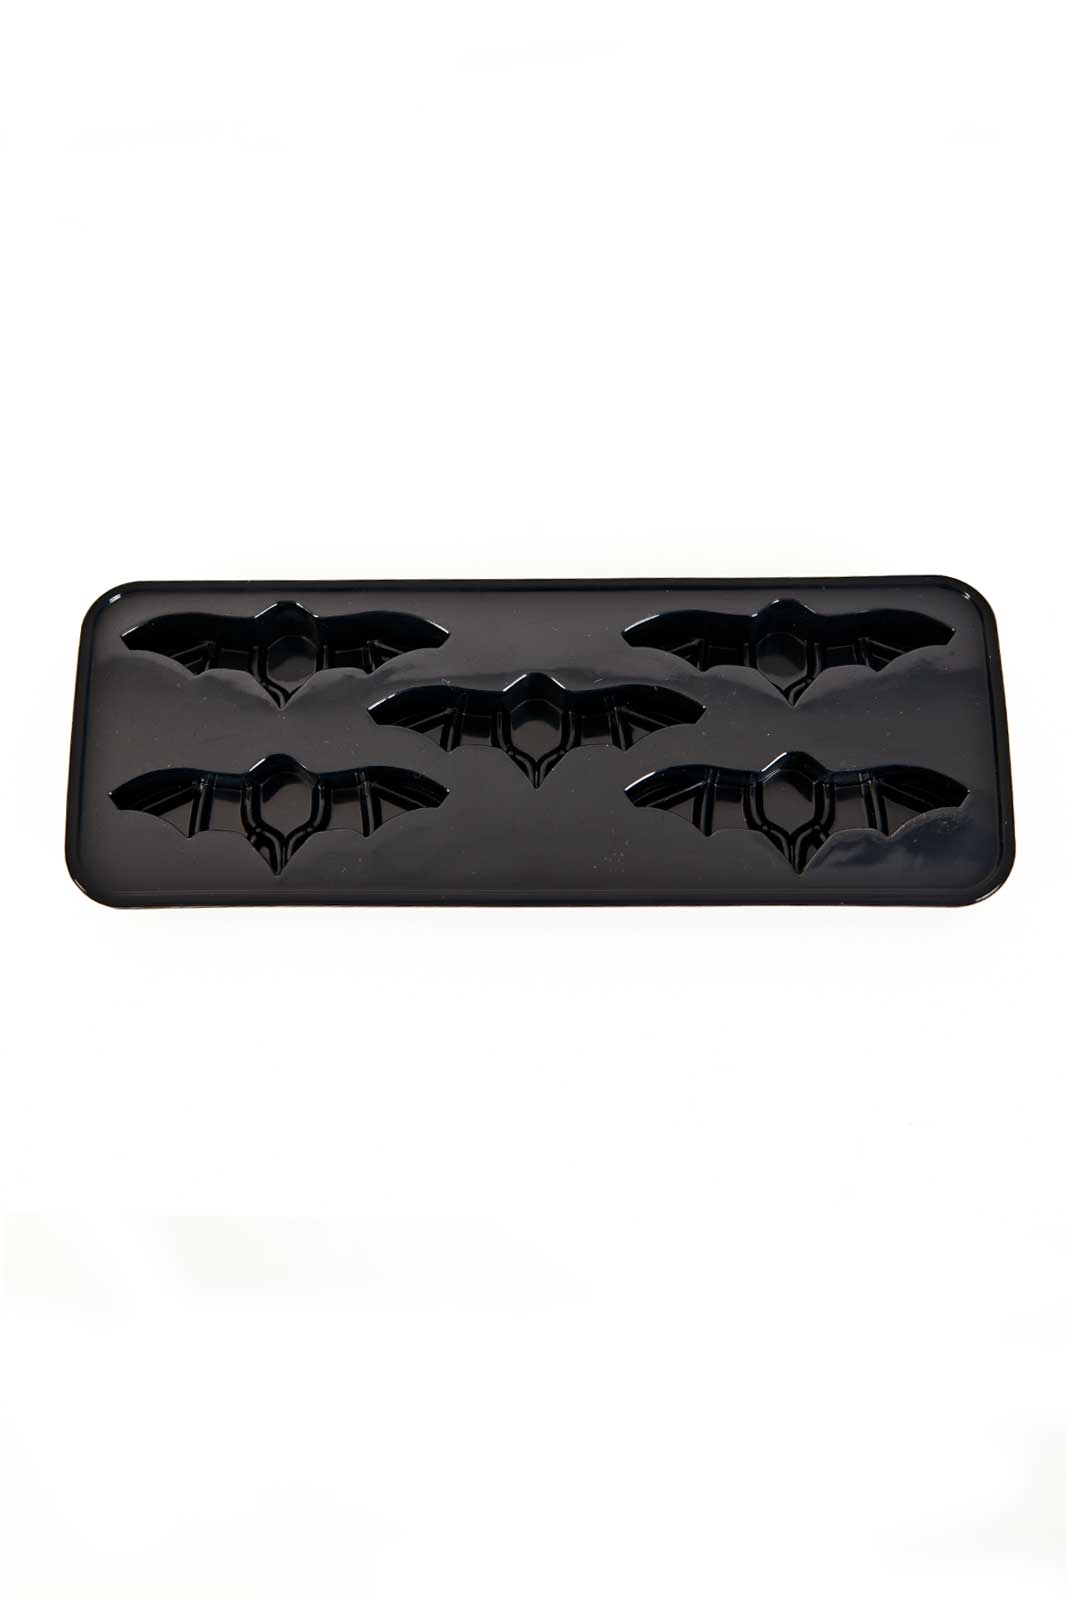 Bat Ice Tray